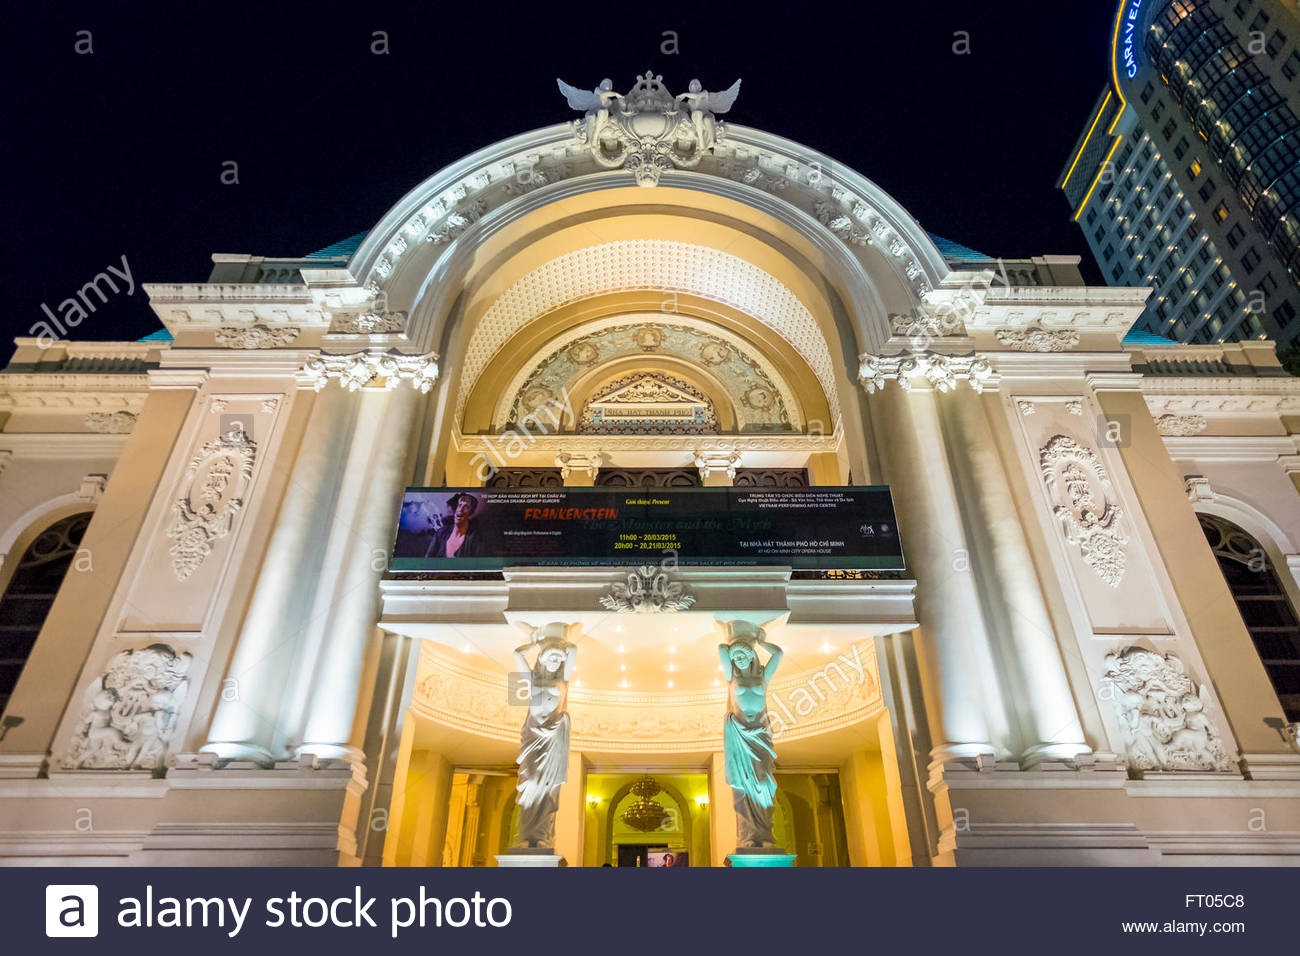 Saigon Opera House (Municipal Theatre) at night, Ho Chi Minh City (Saigon), Vietnam - Stock Image